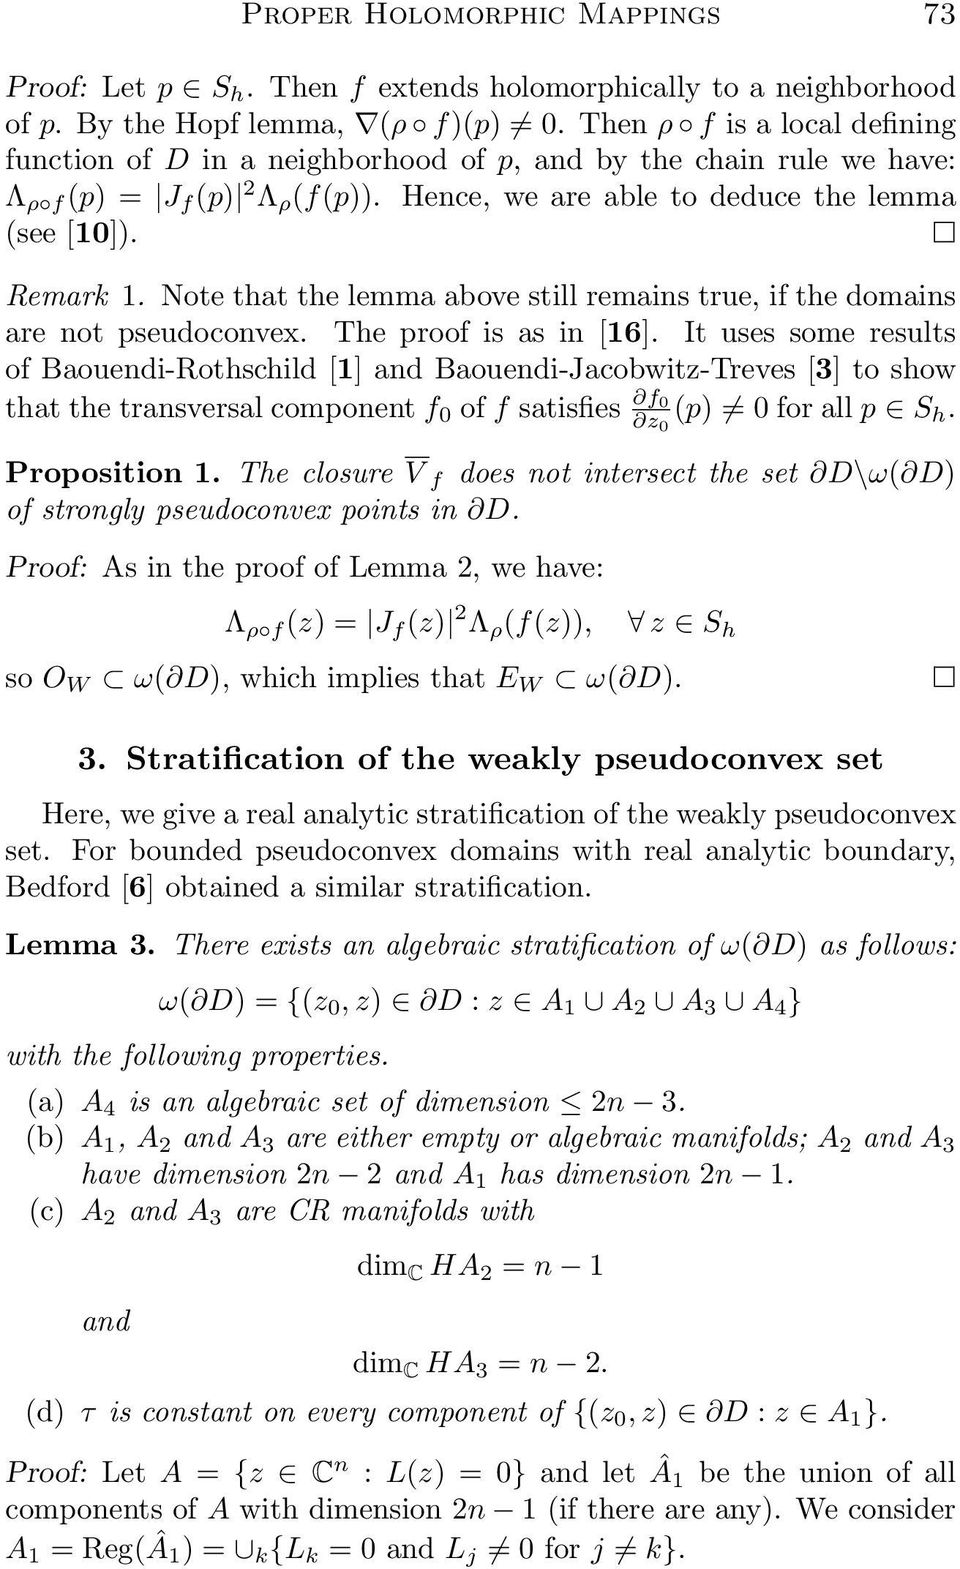 Note that the lemma above still remains true, if the domains are not pseudoconvex. The proof is as in [16].